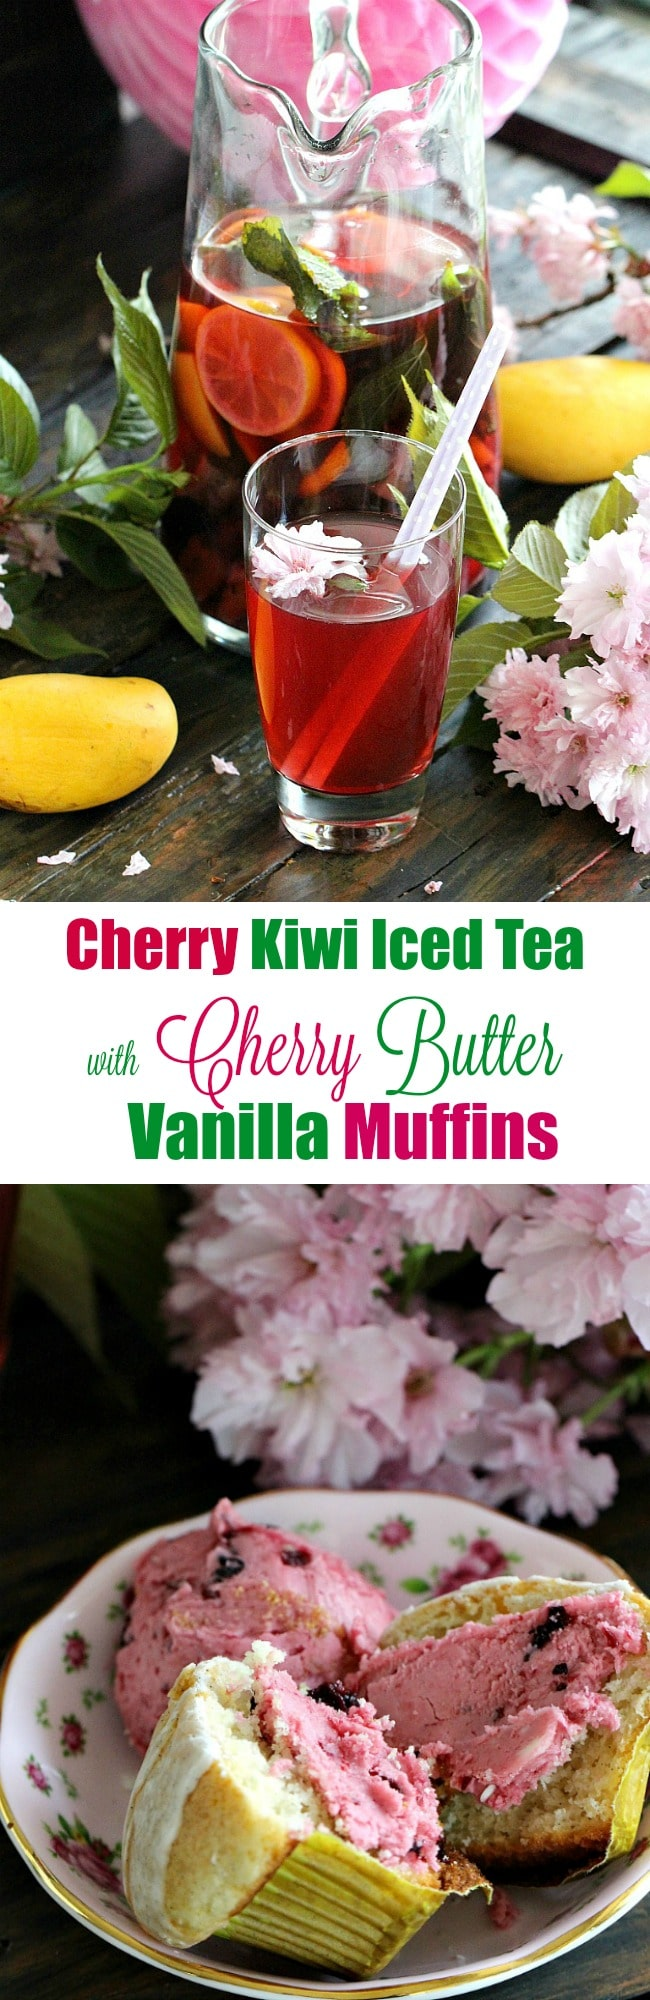 Cherry Kiwi Iced Tea sweetened with homemade Cherry Syrup is loaded with fresh kiwi, mangos, cherries and lots of fresh mint.